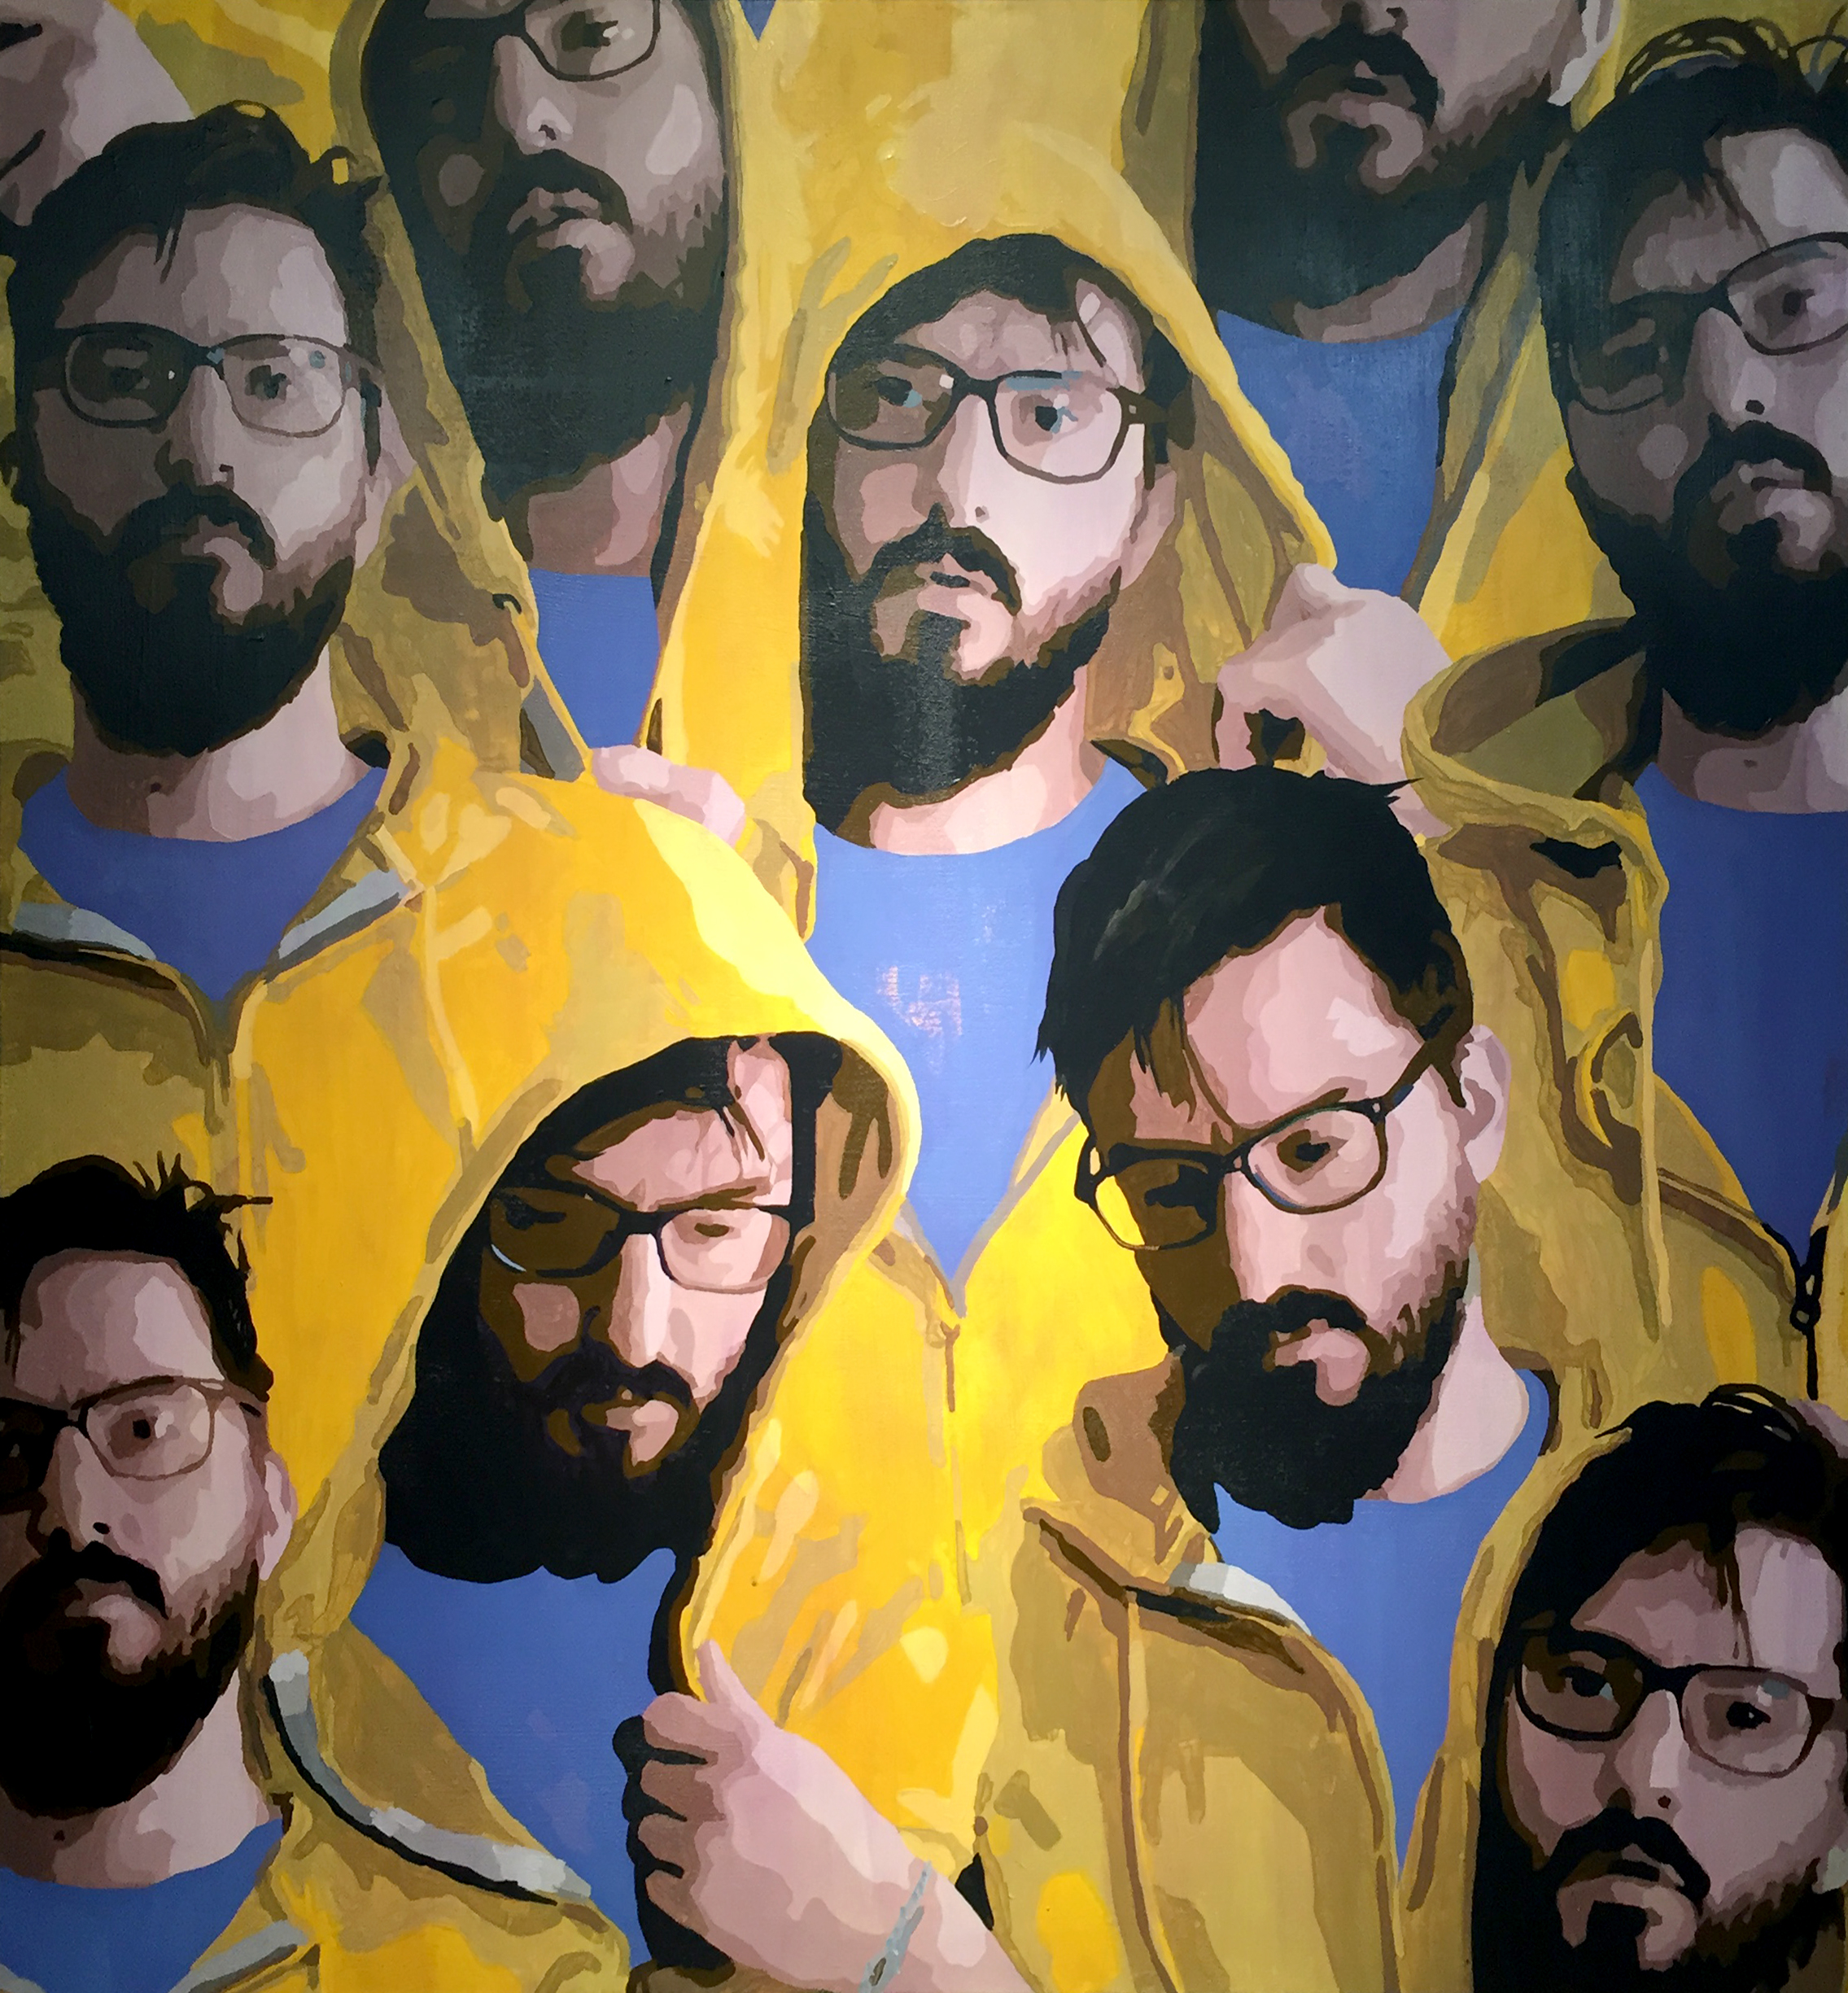 A Range Of Mostly The Same Emotions In A Yellow Hood  Acrylic on Canvas  60 x 60 in (152.4cm x 152.4cm)